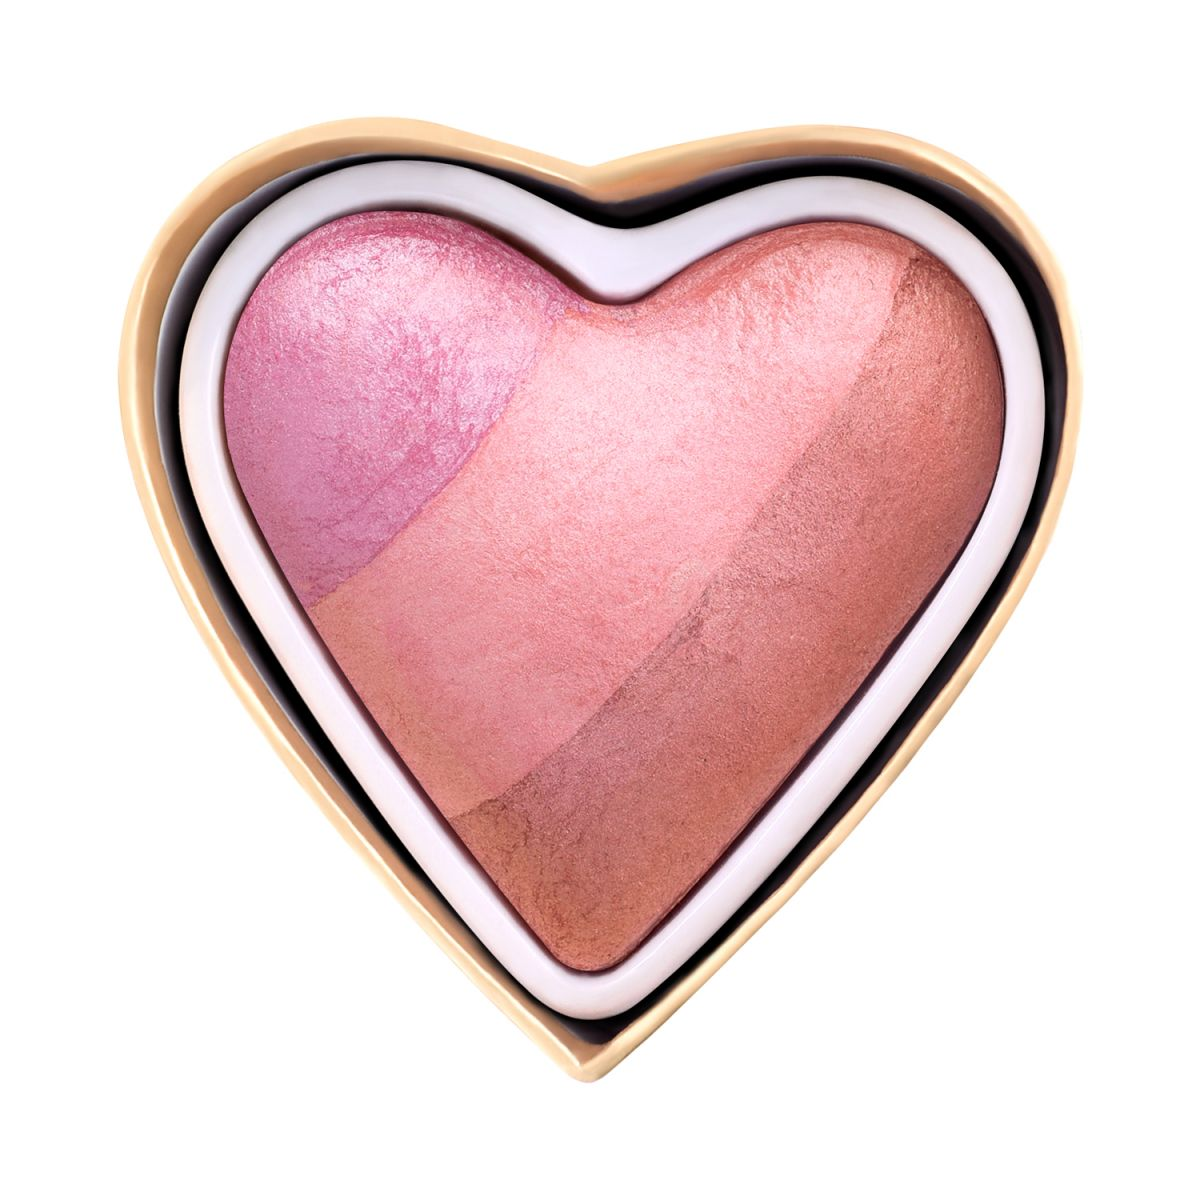 Rumenilo I HEART MAKEUP Blushing Hearts Candy Queen of Hearts 10g